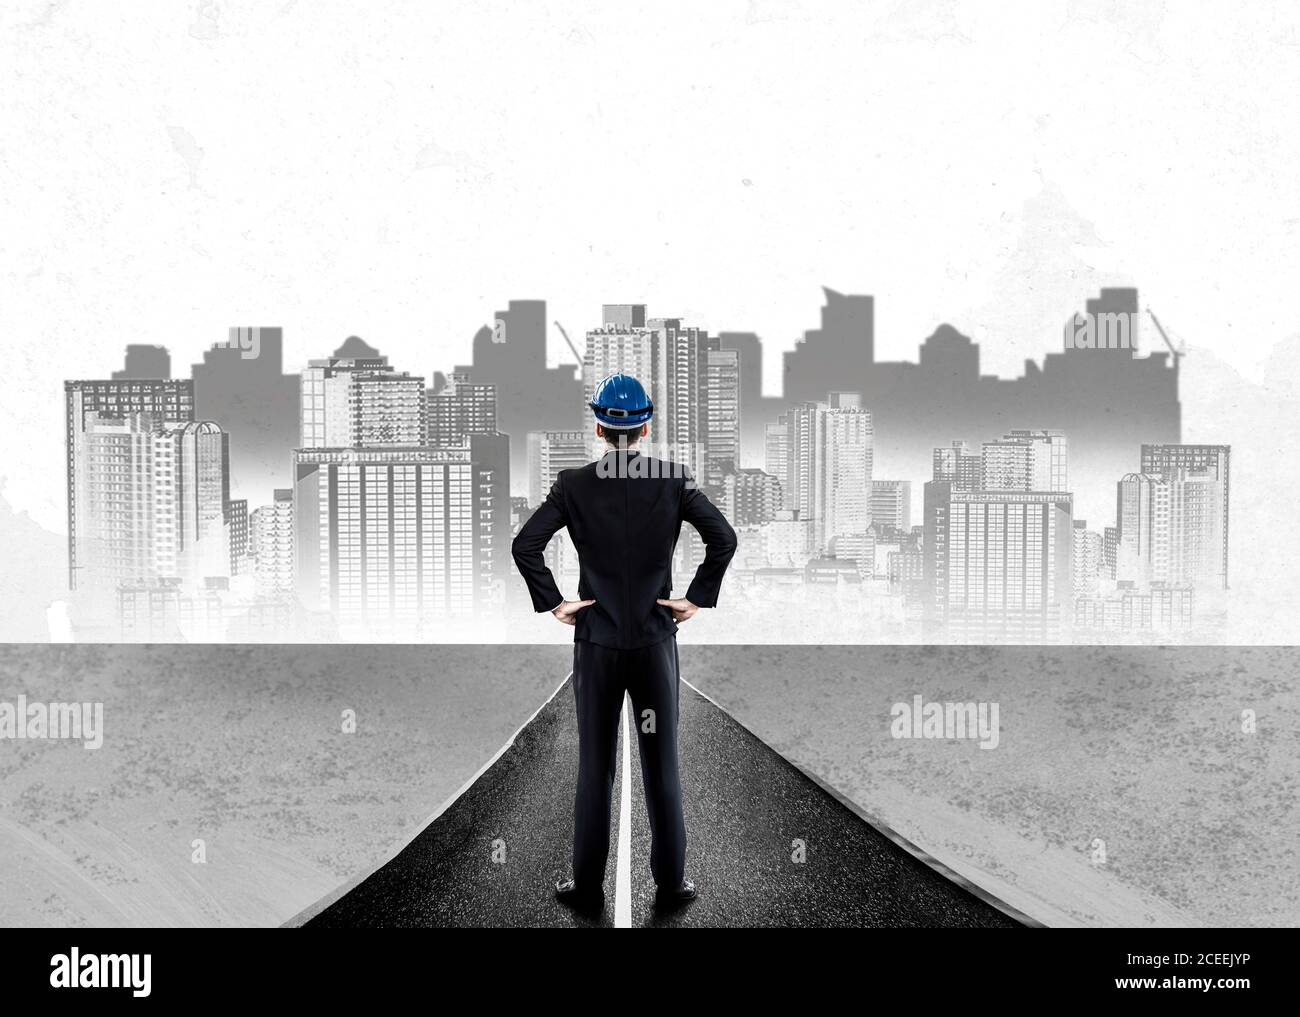 City civil planning and real estate development. Stock Photo